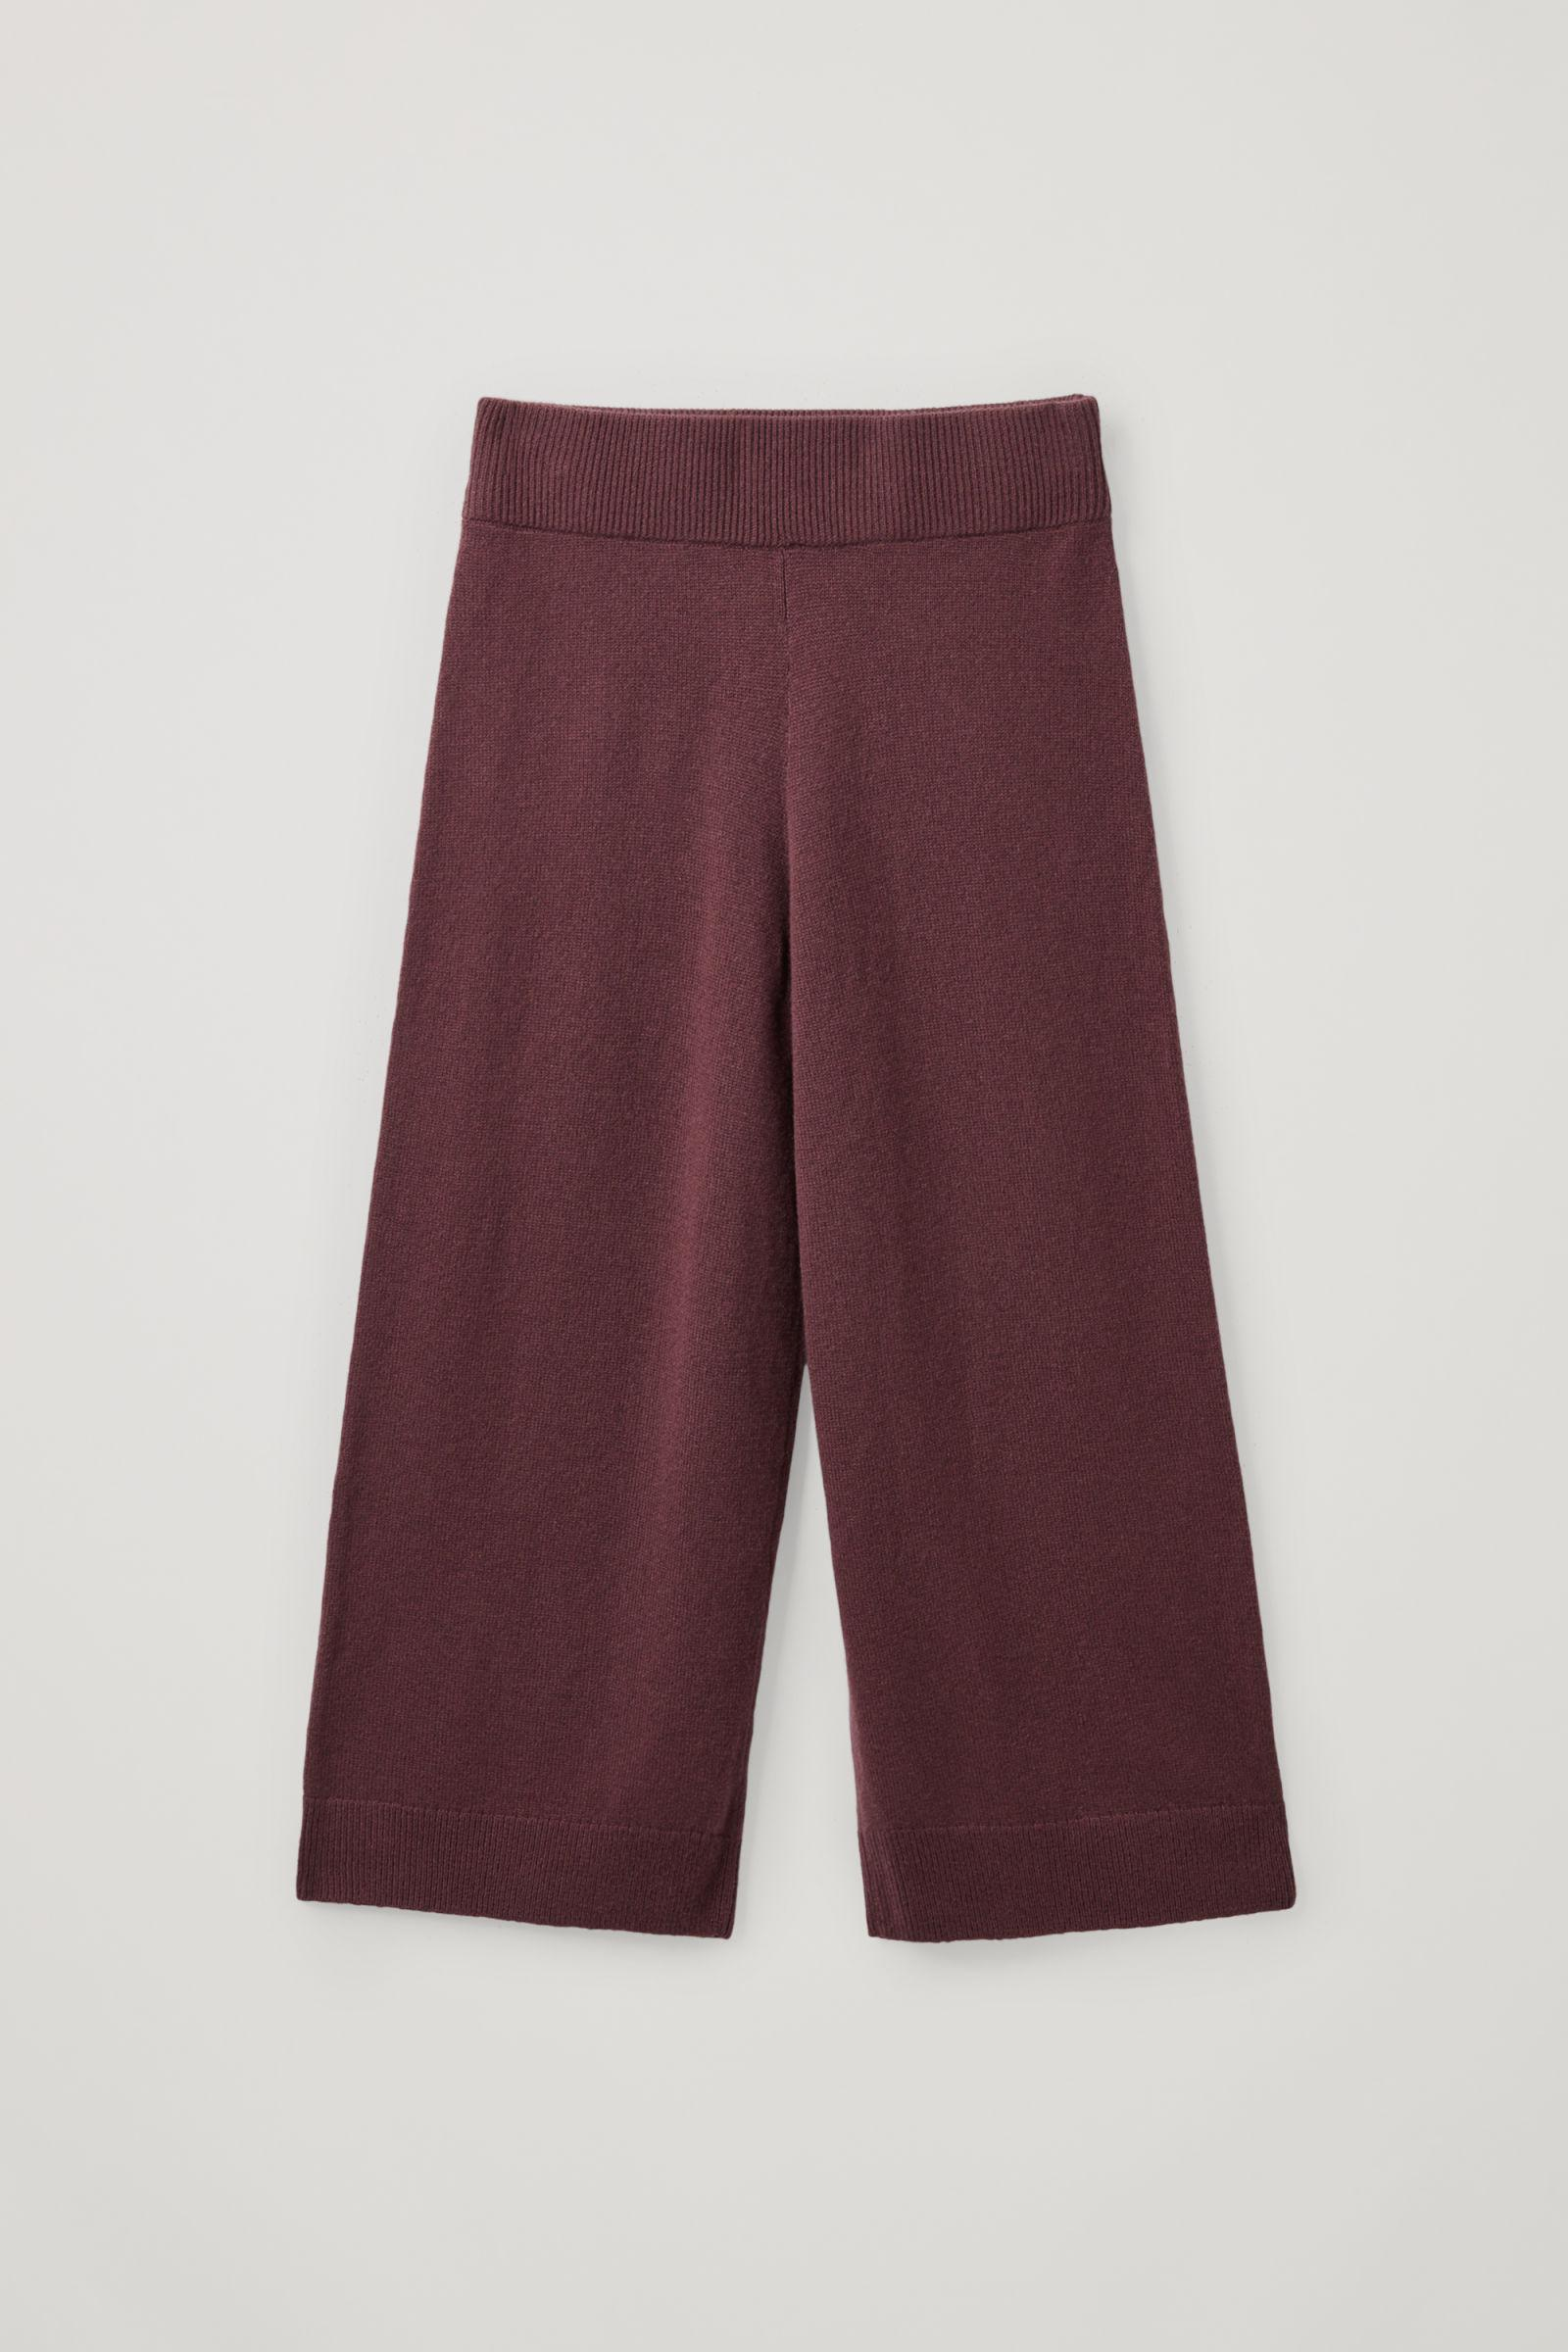 RECYCLED CASHMERE WIDE-LEG PANTS 5